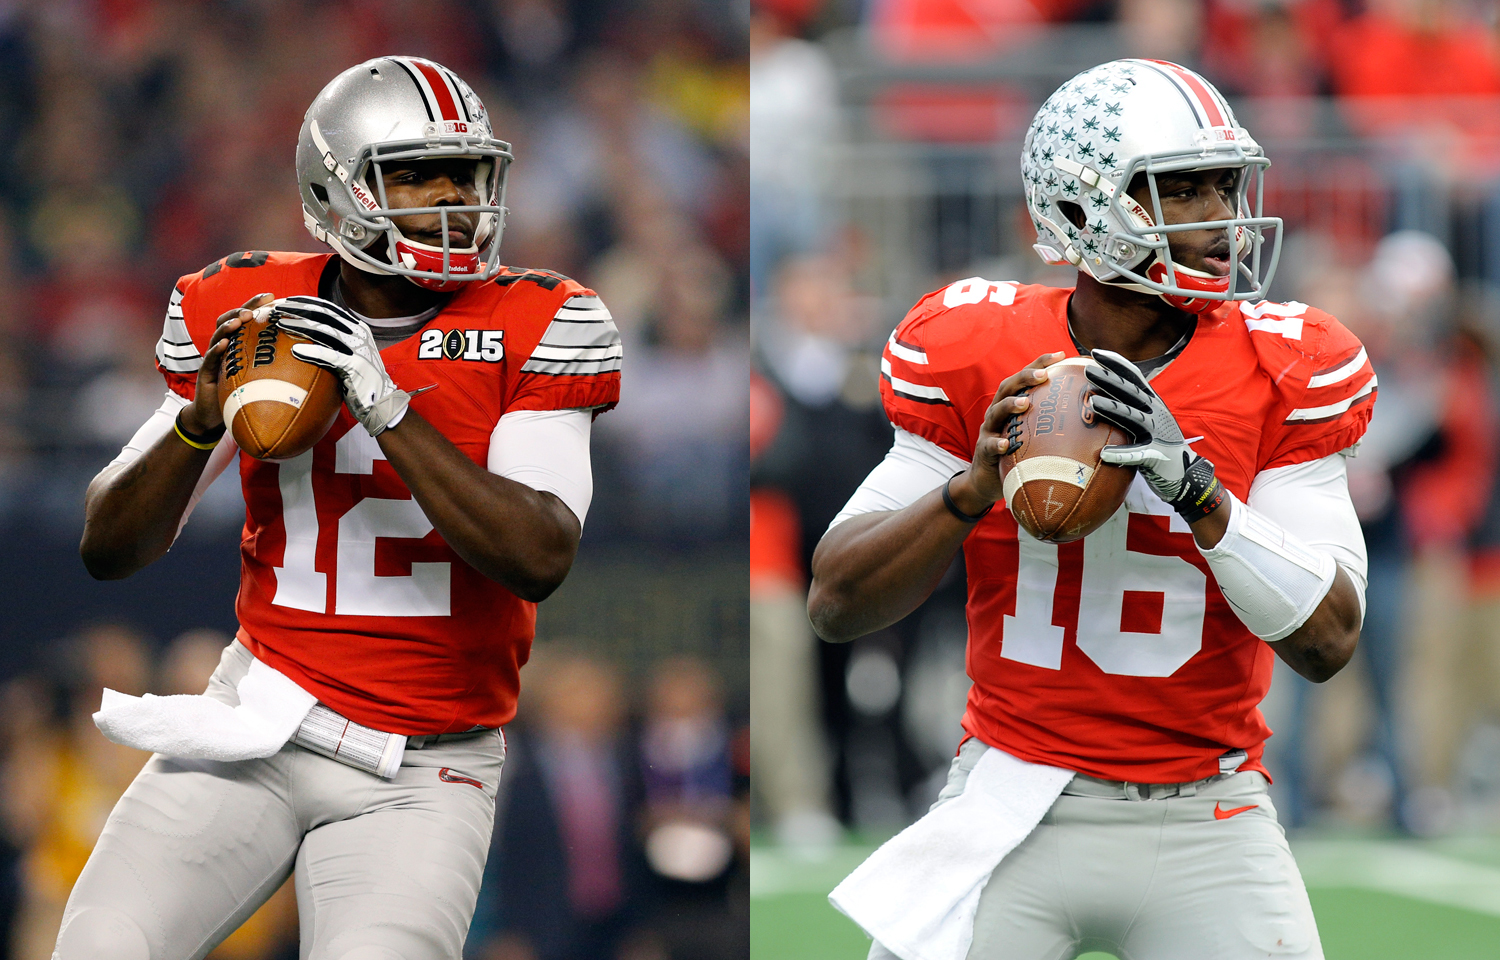 The most compelling storyline of the college football offseason centered on who would win Ohio State's starting quarterback job. With Braxton Miller moving to h-back, J.T. Barrett and Cardale Jones will compete for the right to run the Buckeyes' first-team offense. Jones led Ohio State to a national title, but Barrett flashed immense potential during the regular season.